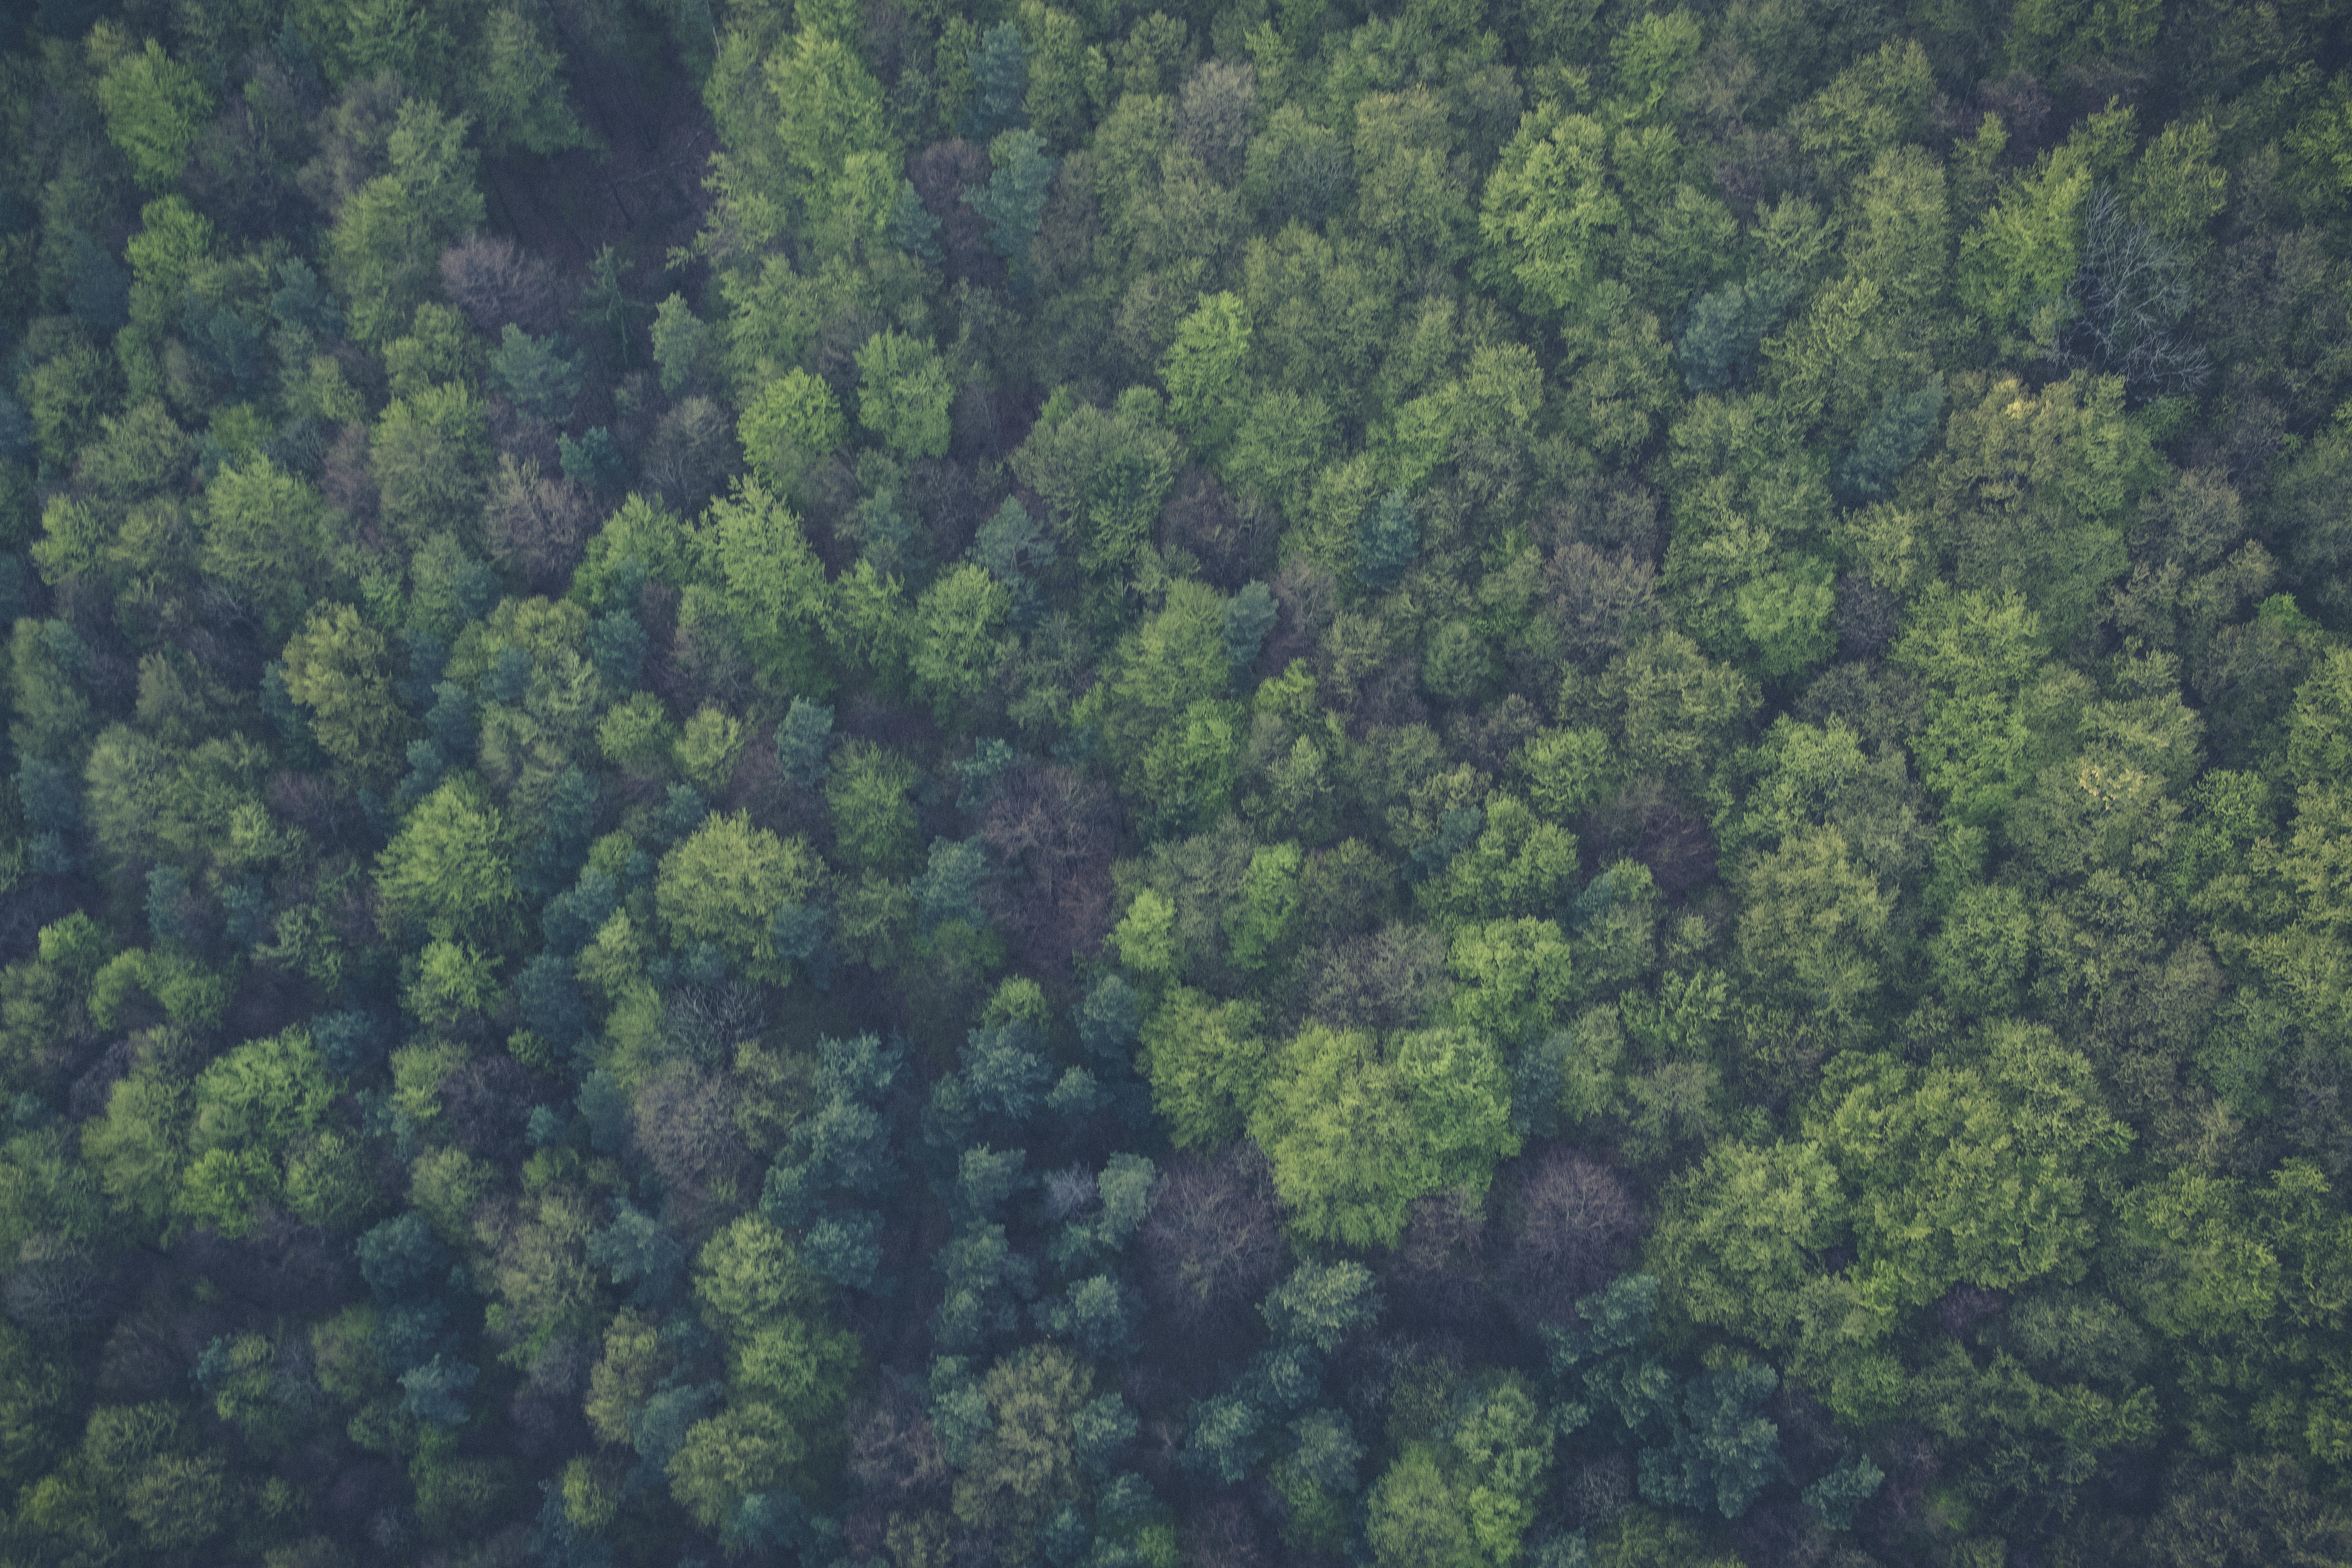 Green Trees, Trees, Nature, Green, Forest, HQ Photo